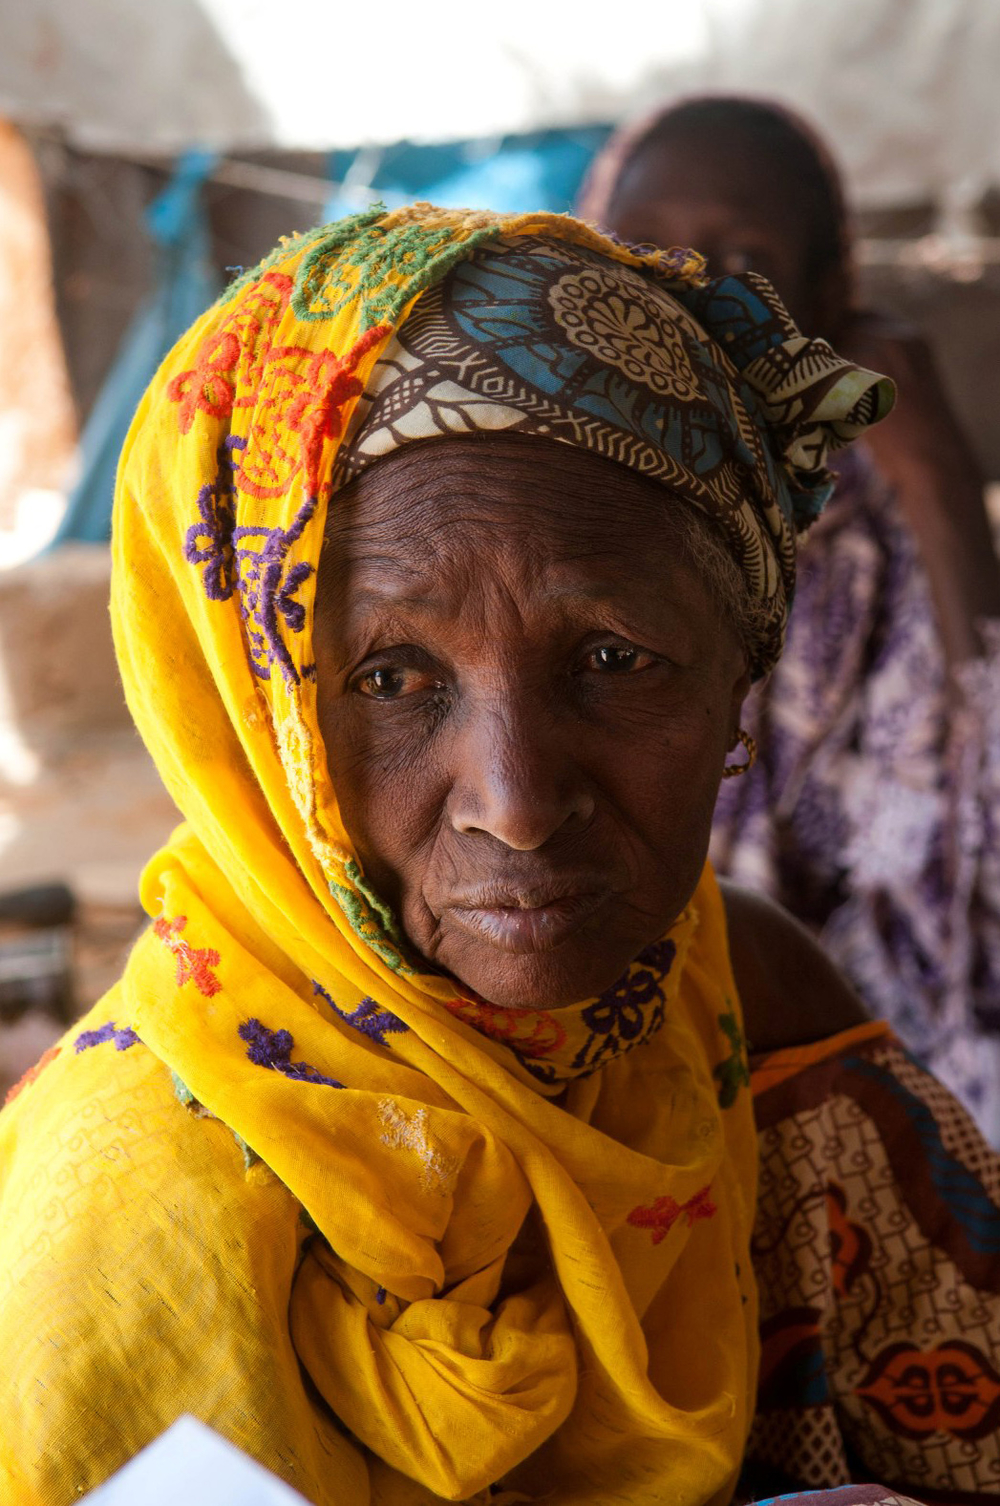 Houley Dia ran out of food a month ago and is now existing on water. A 60-something-year-old widow, she lives in Houdallah, a village of the Fula ethnic group in southern Mauritania on the border with Senegal. Oxfam is giving cash distributions to the mos